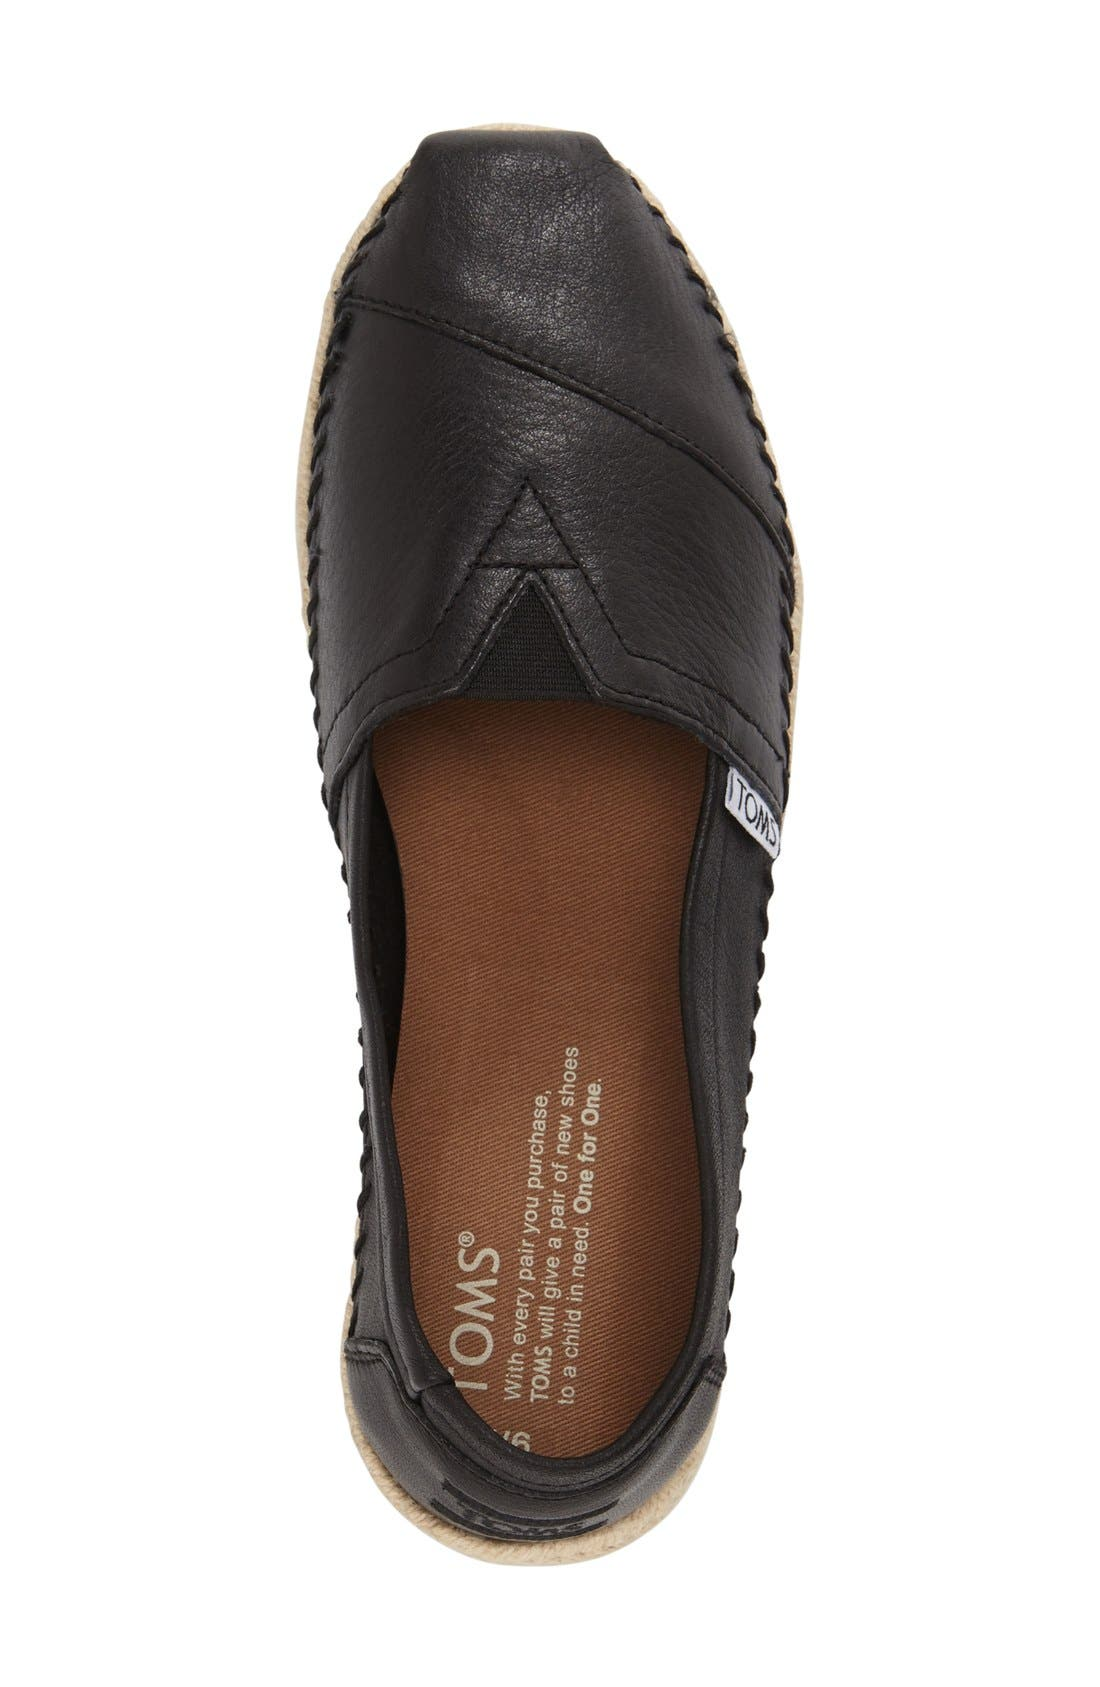 Alternate Image 3  - TOMS 'Classic - Leather' Espadrille Slip-On (Women)